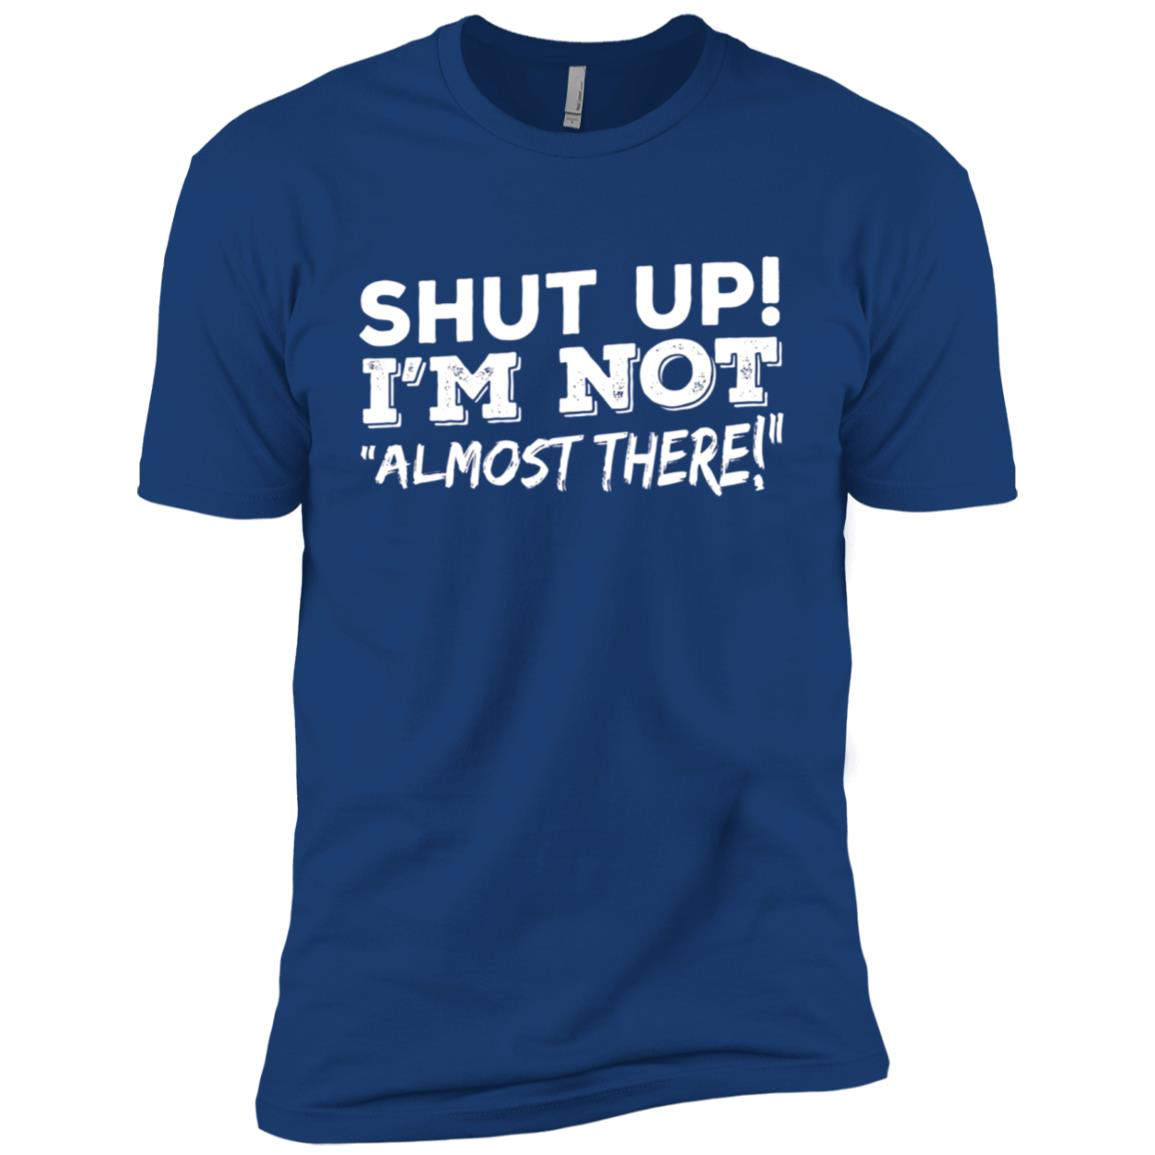 Shut Up! I'm Not Almost There! – Runners Men Short Sleeve T-Shirt